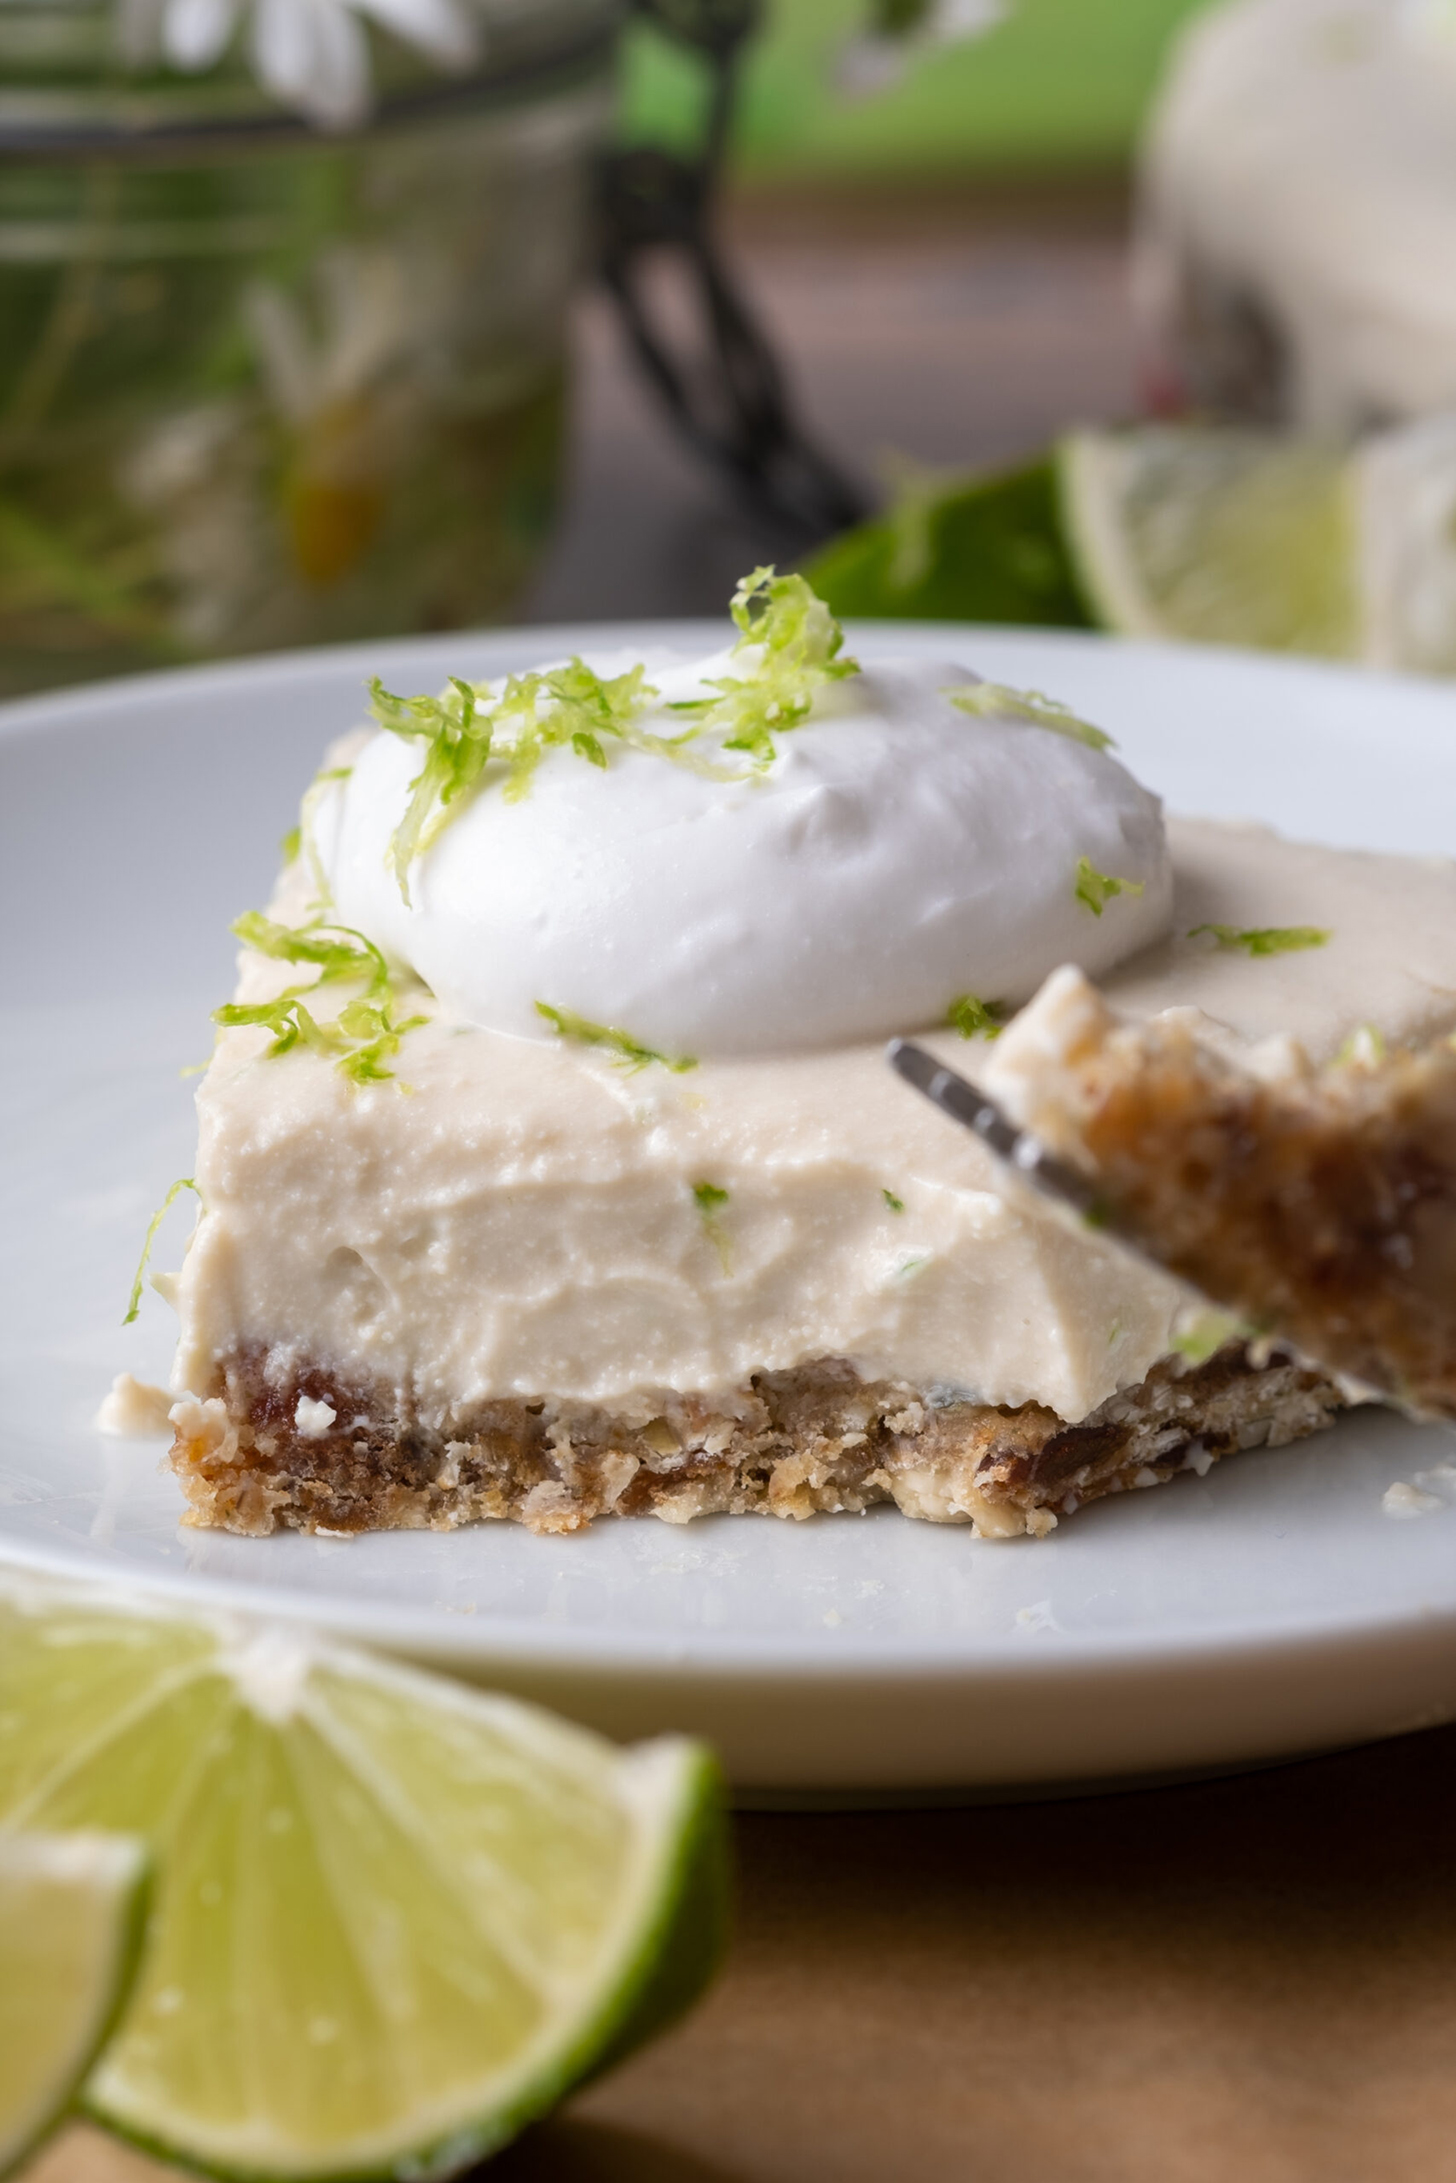 Healthy Key Lime Pie on a plate with a fork taking a bite.